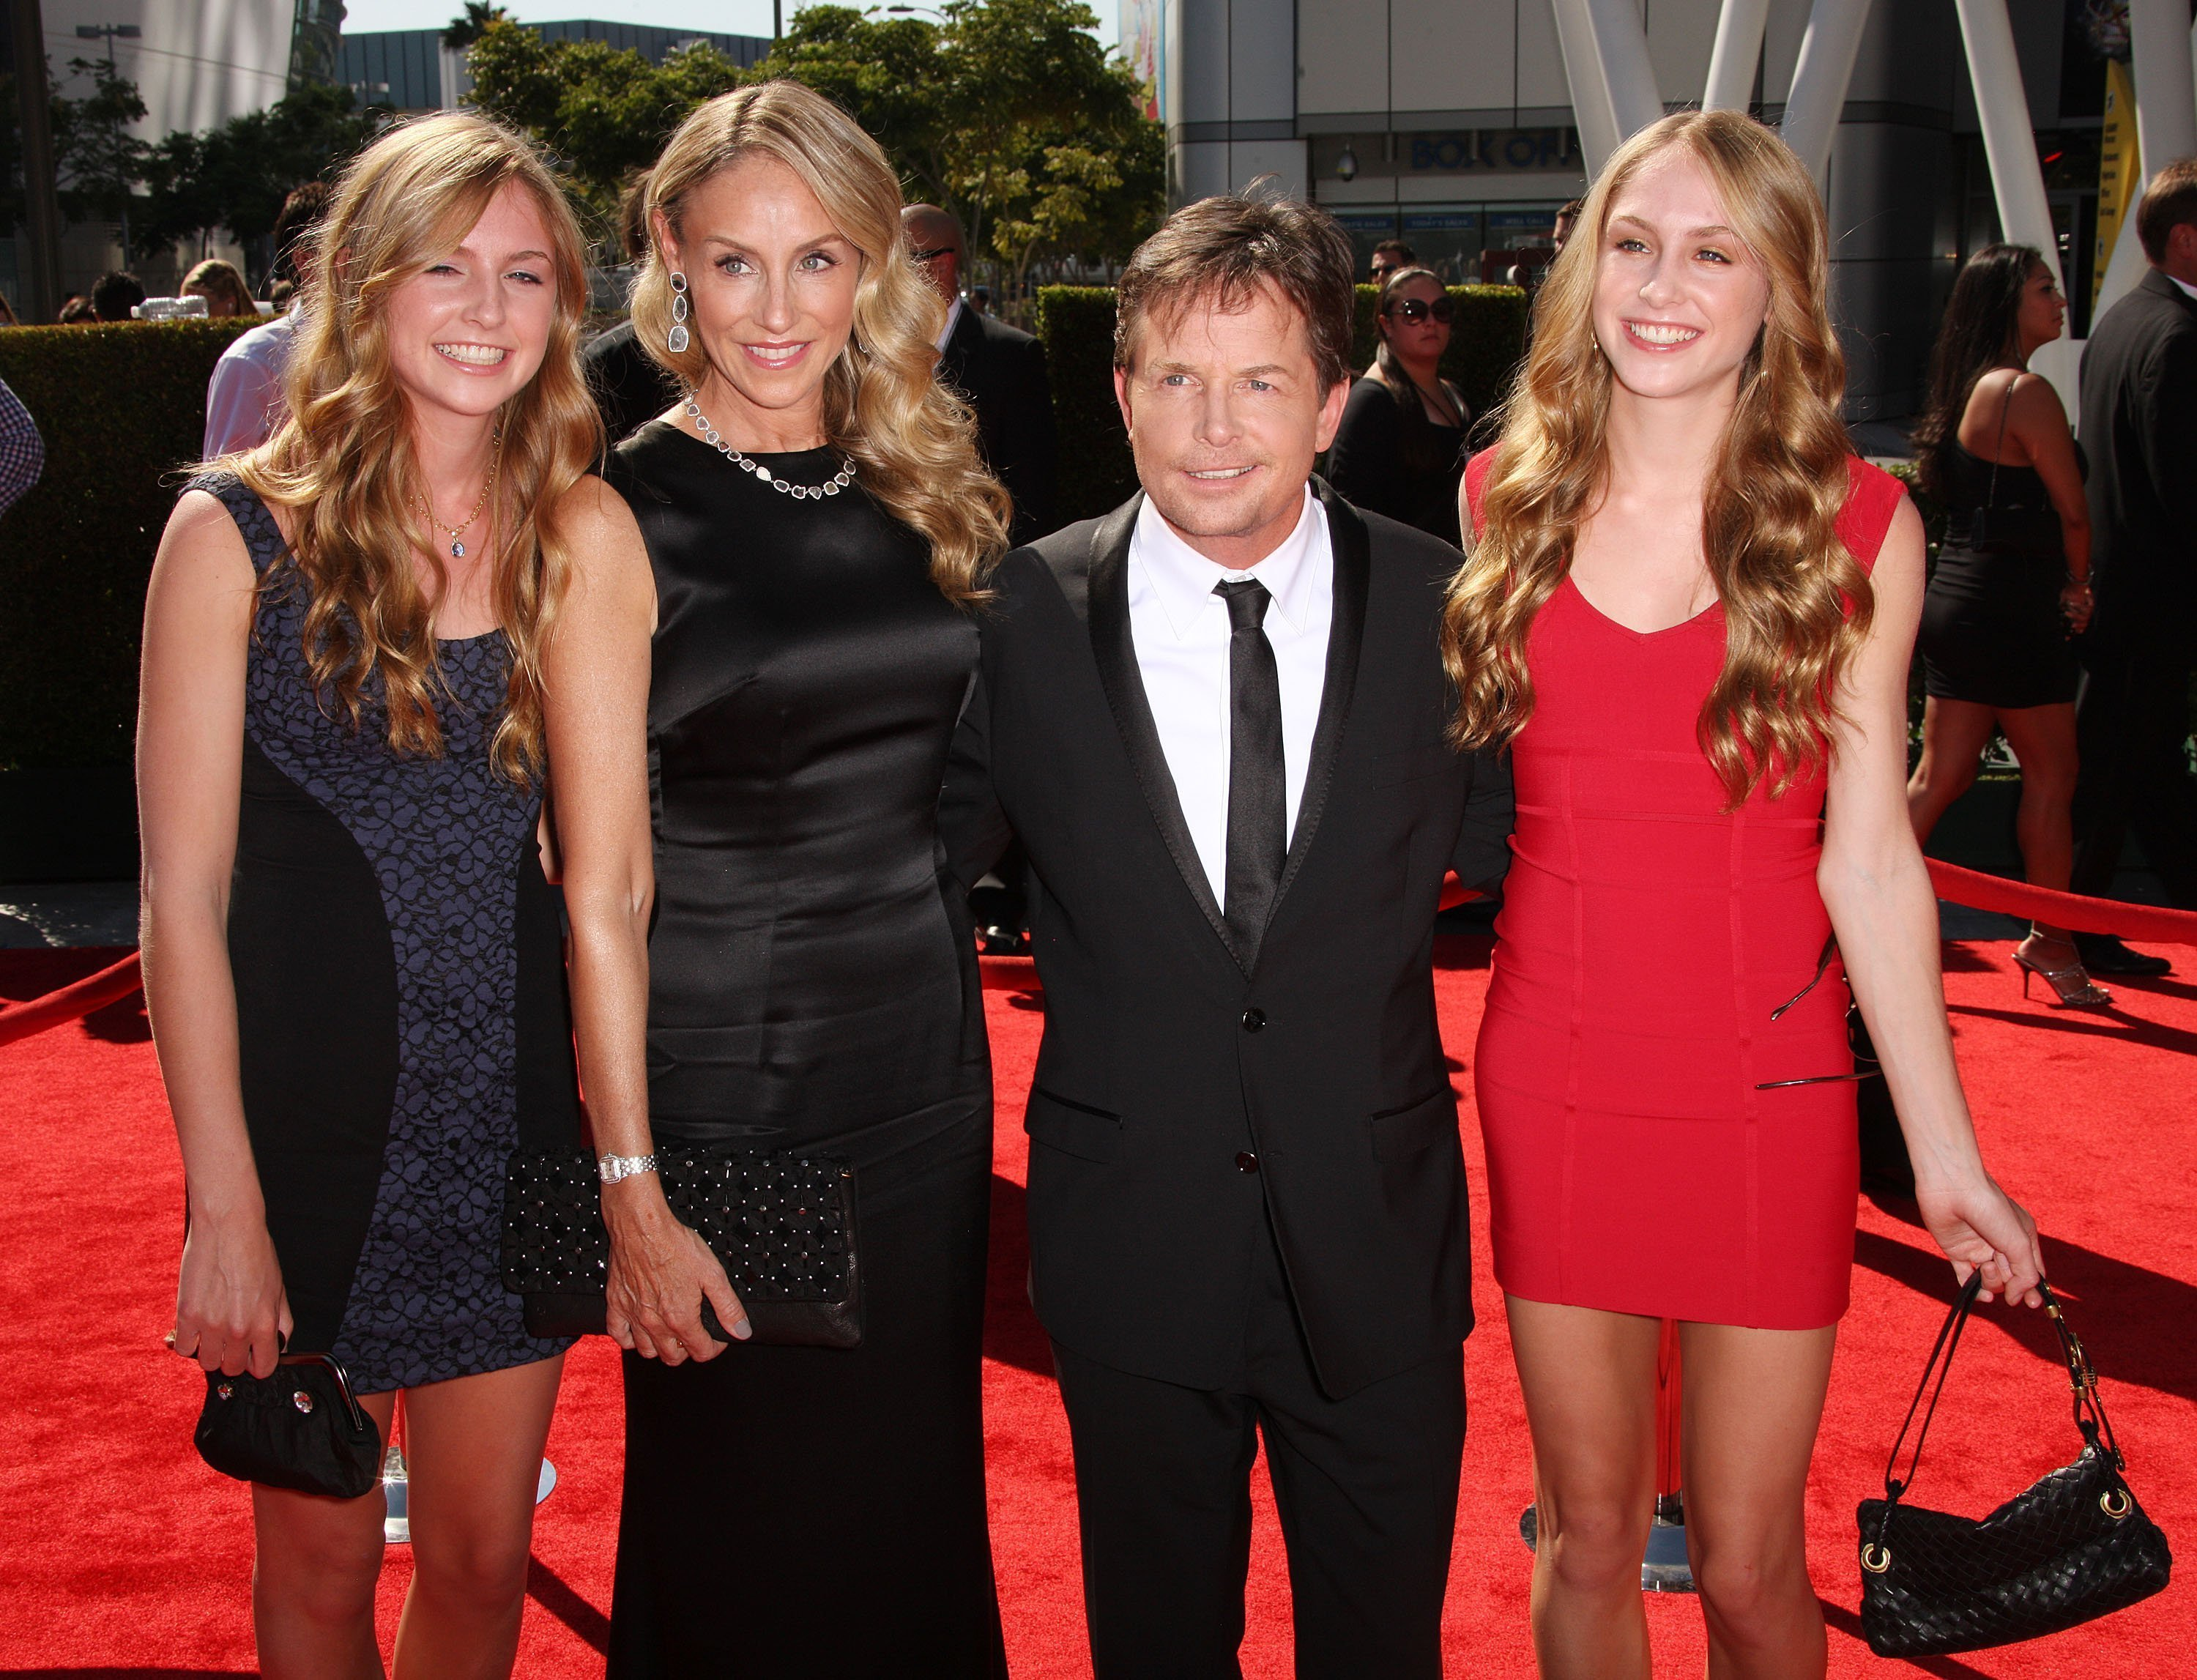 Michael J Fox mit Familie | Quelle: Getty Images